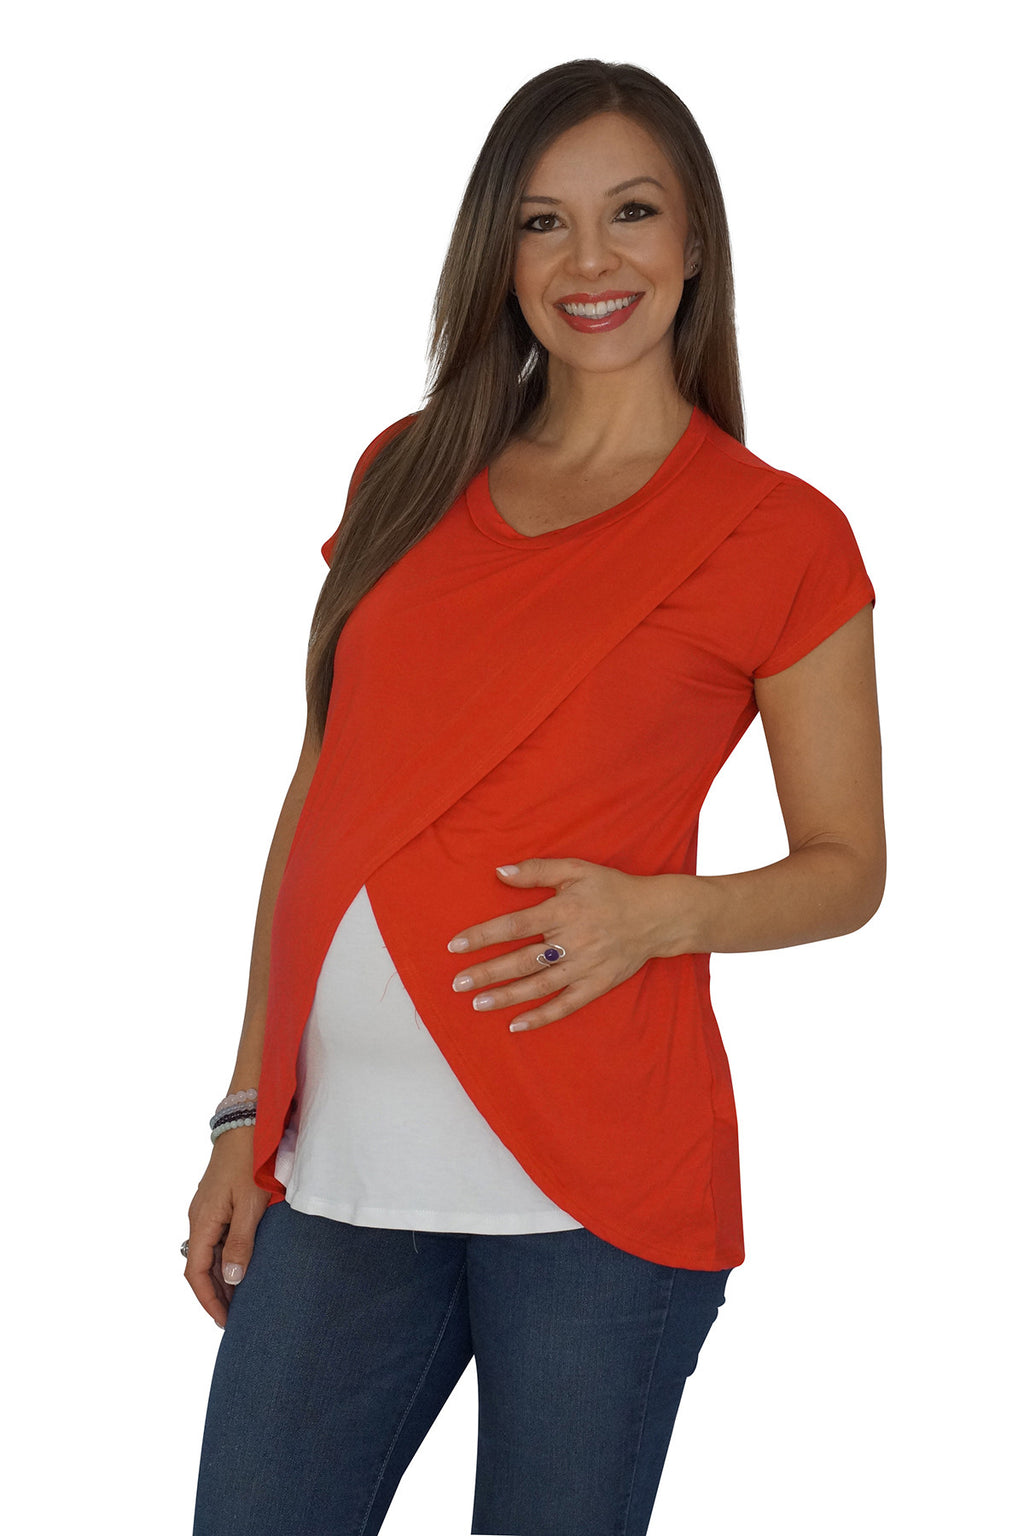 Nursing Top - Mommylicious